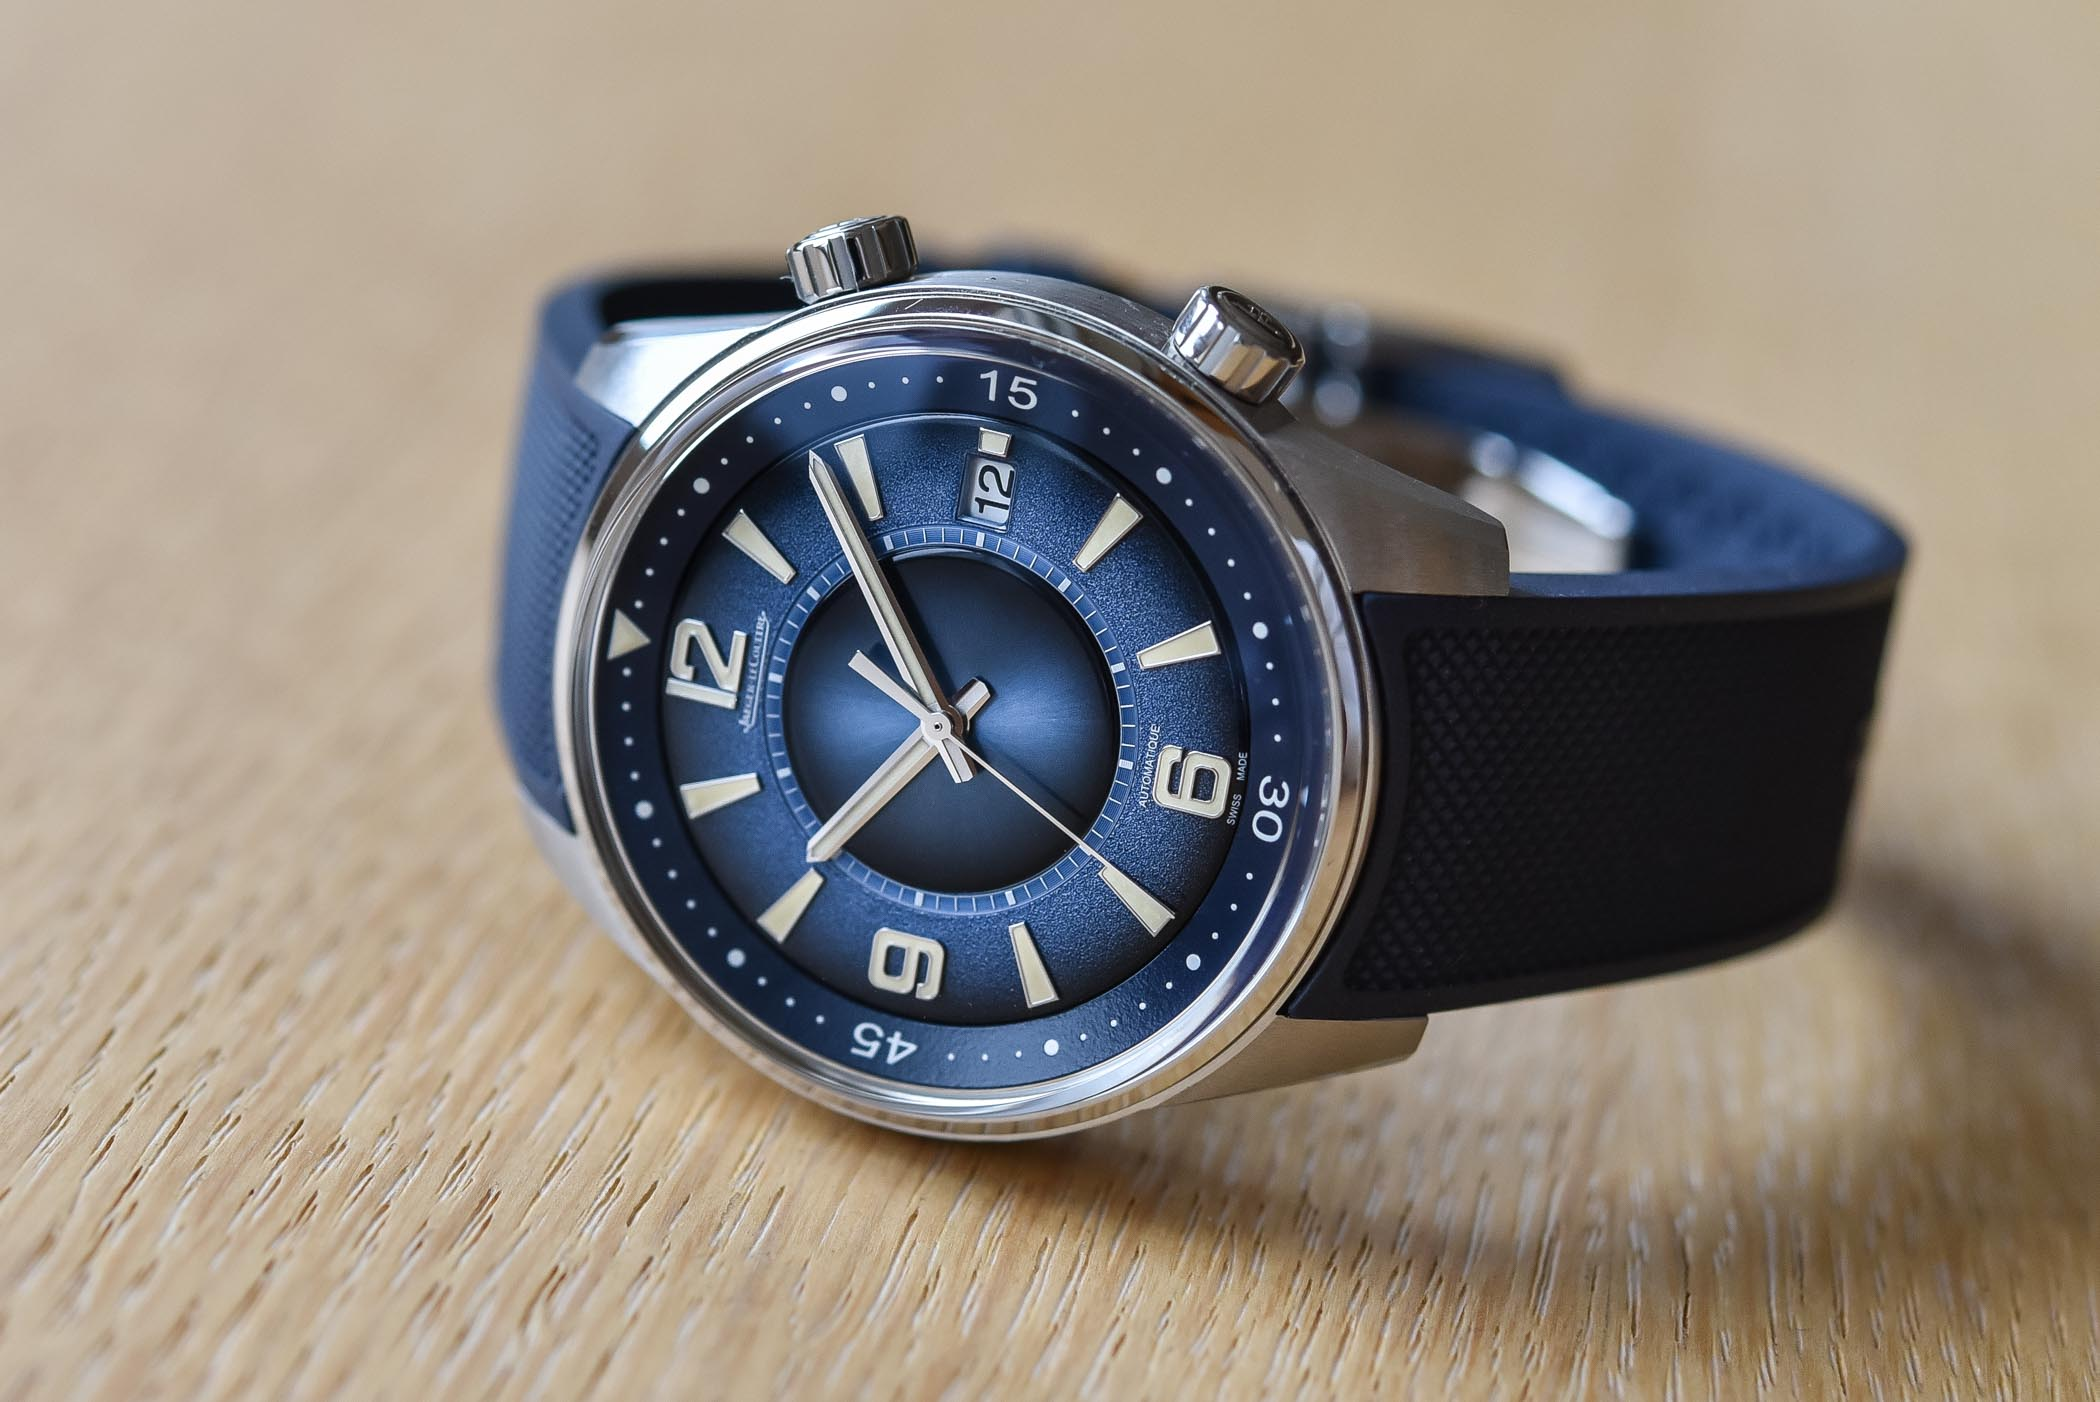 Jaeger-LeCoultre Polaris Date Limited Edition Blue Double Gradient